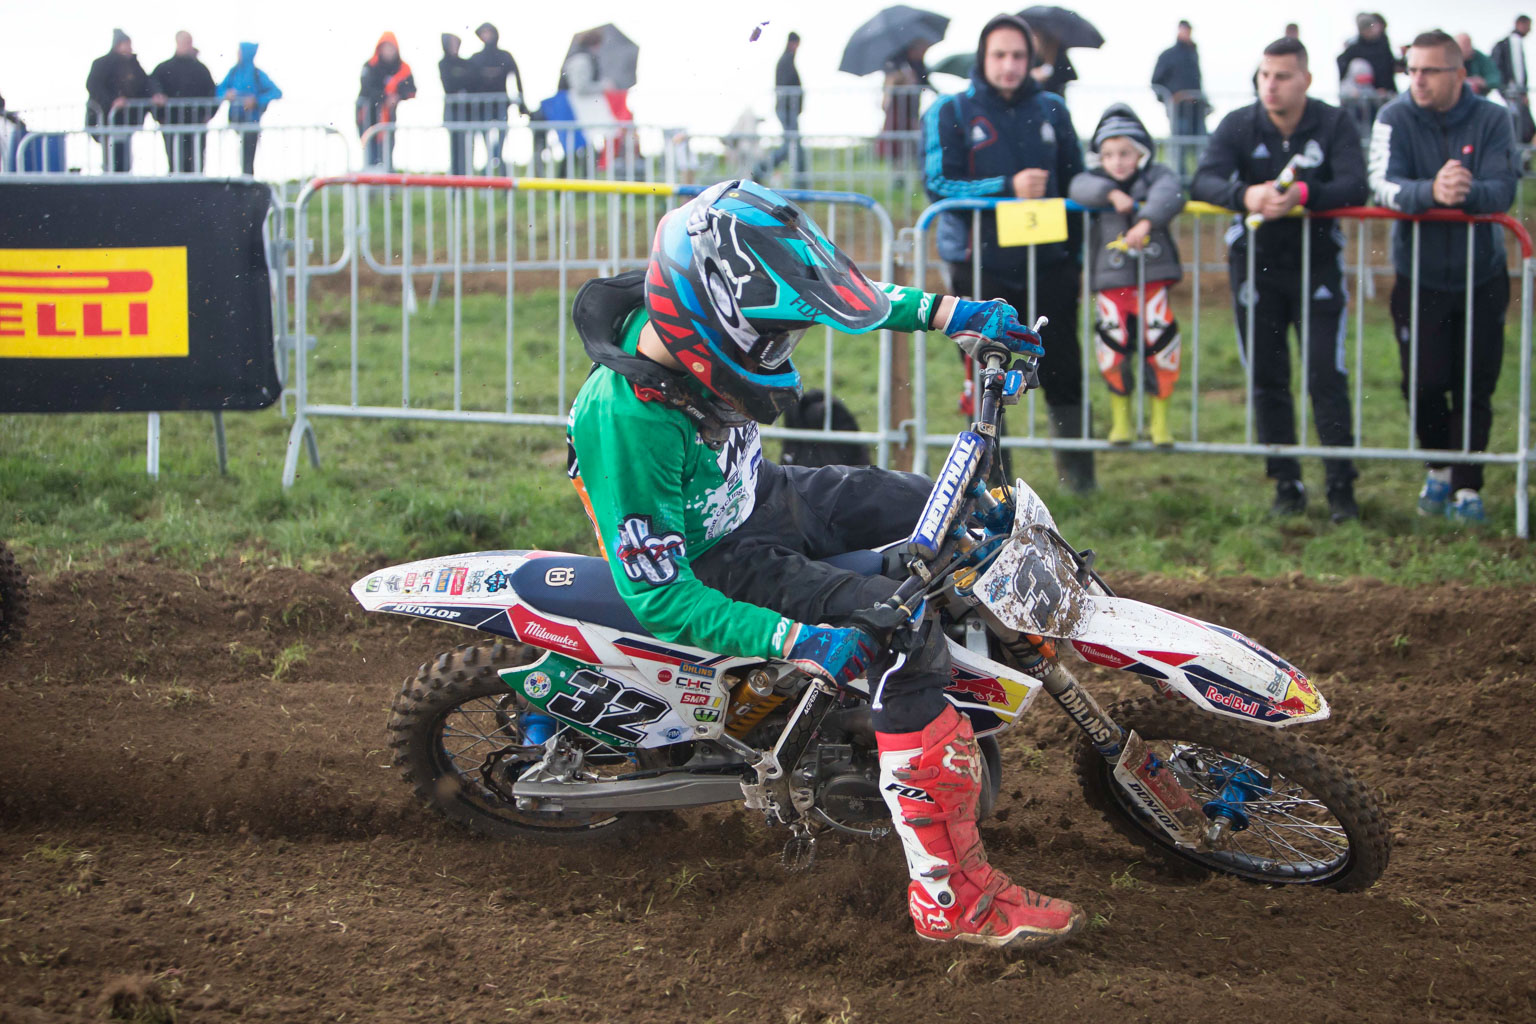 Ross Kearns (Husqvarna)